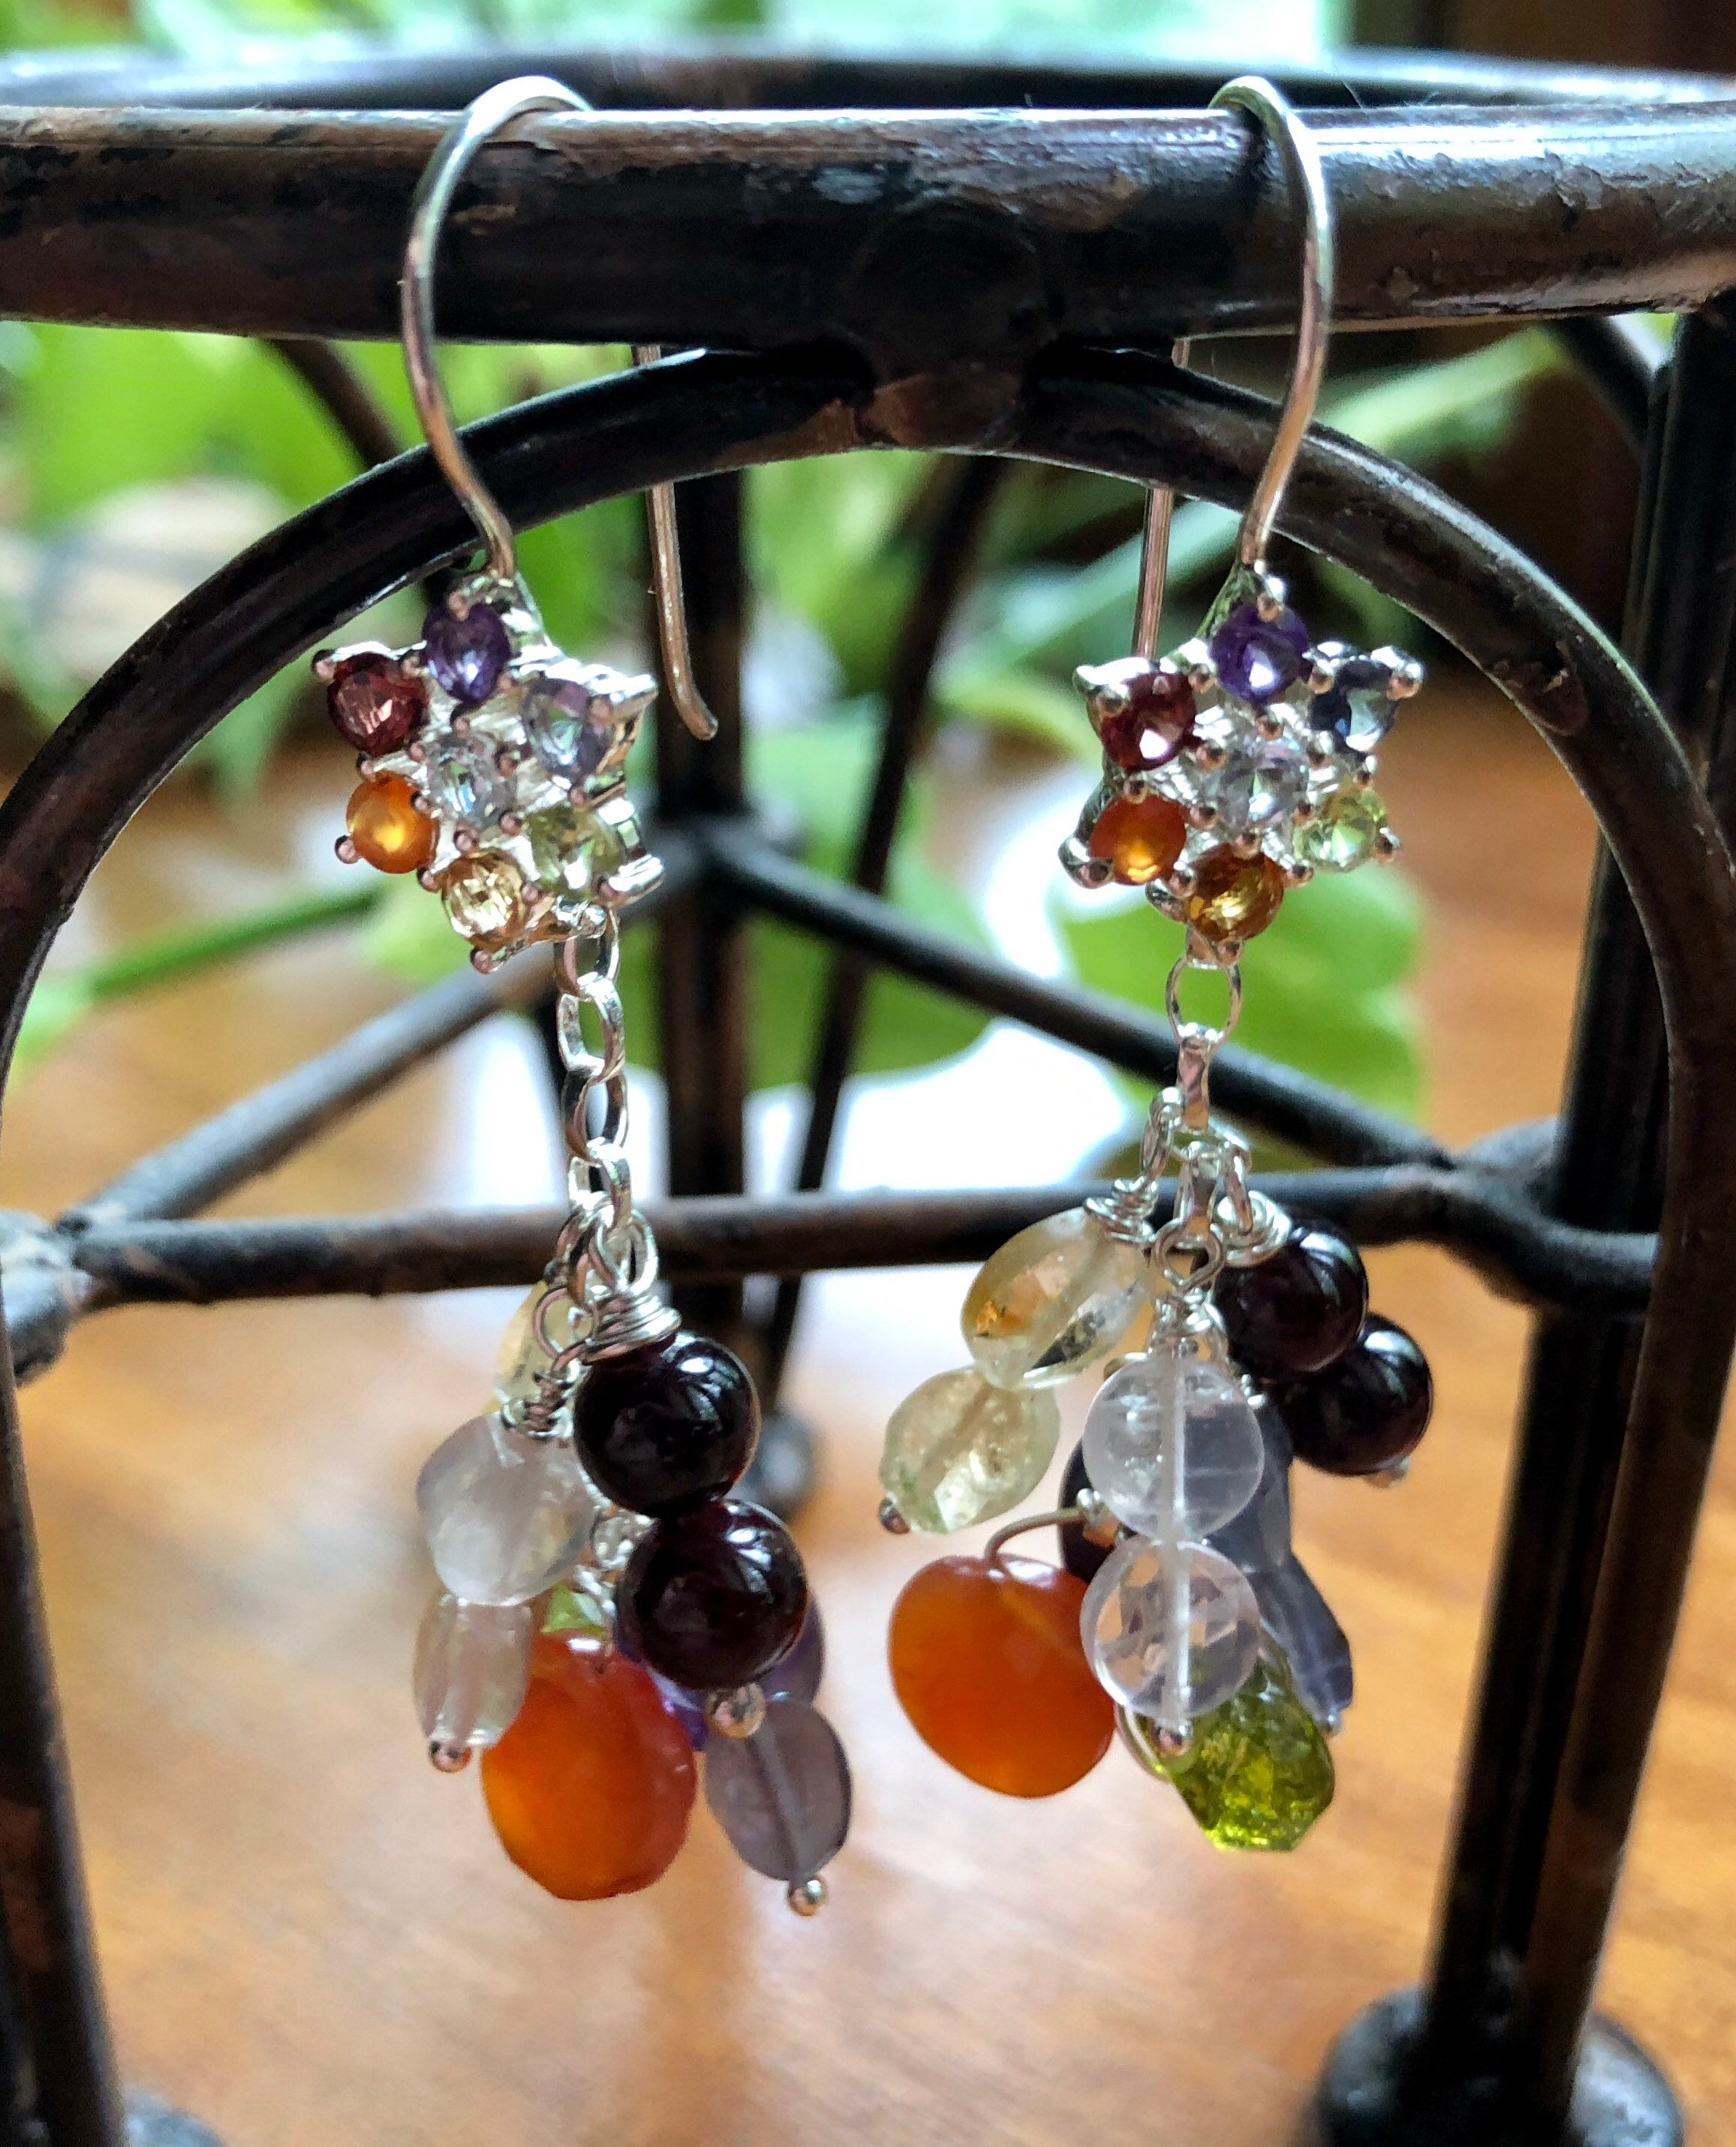 e7cc17537 Chakra Gemstone Handcrafted Earrings, Sterling Silver Floral ...